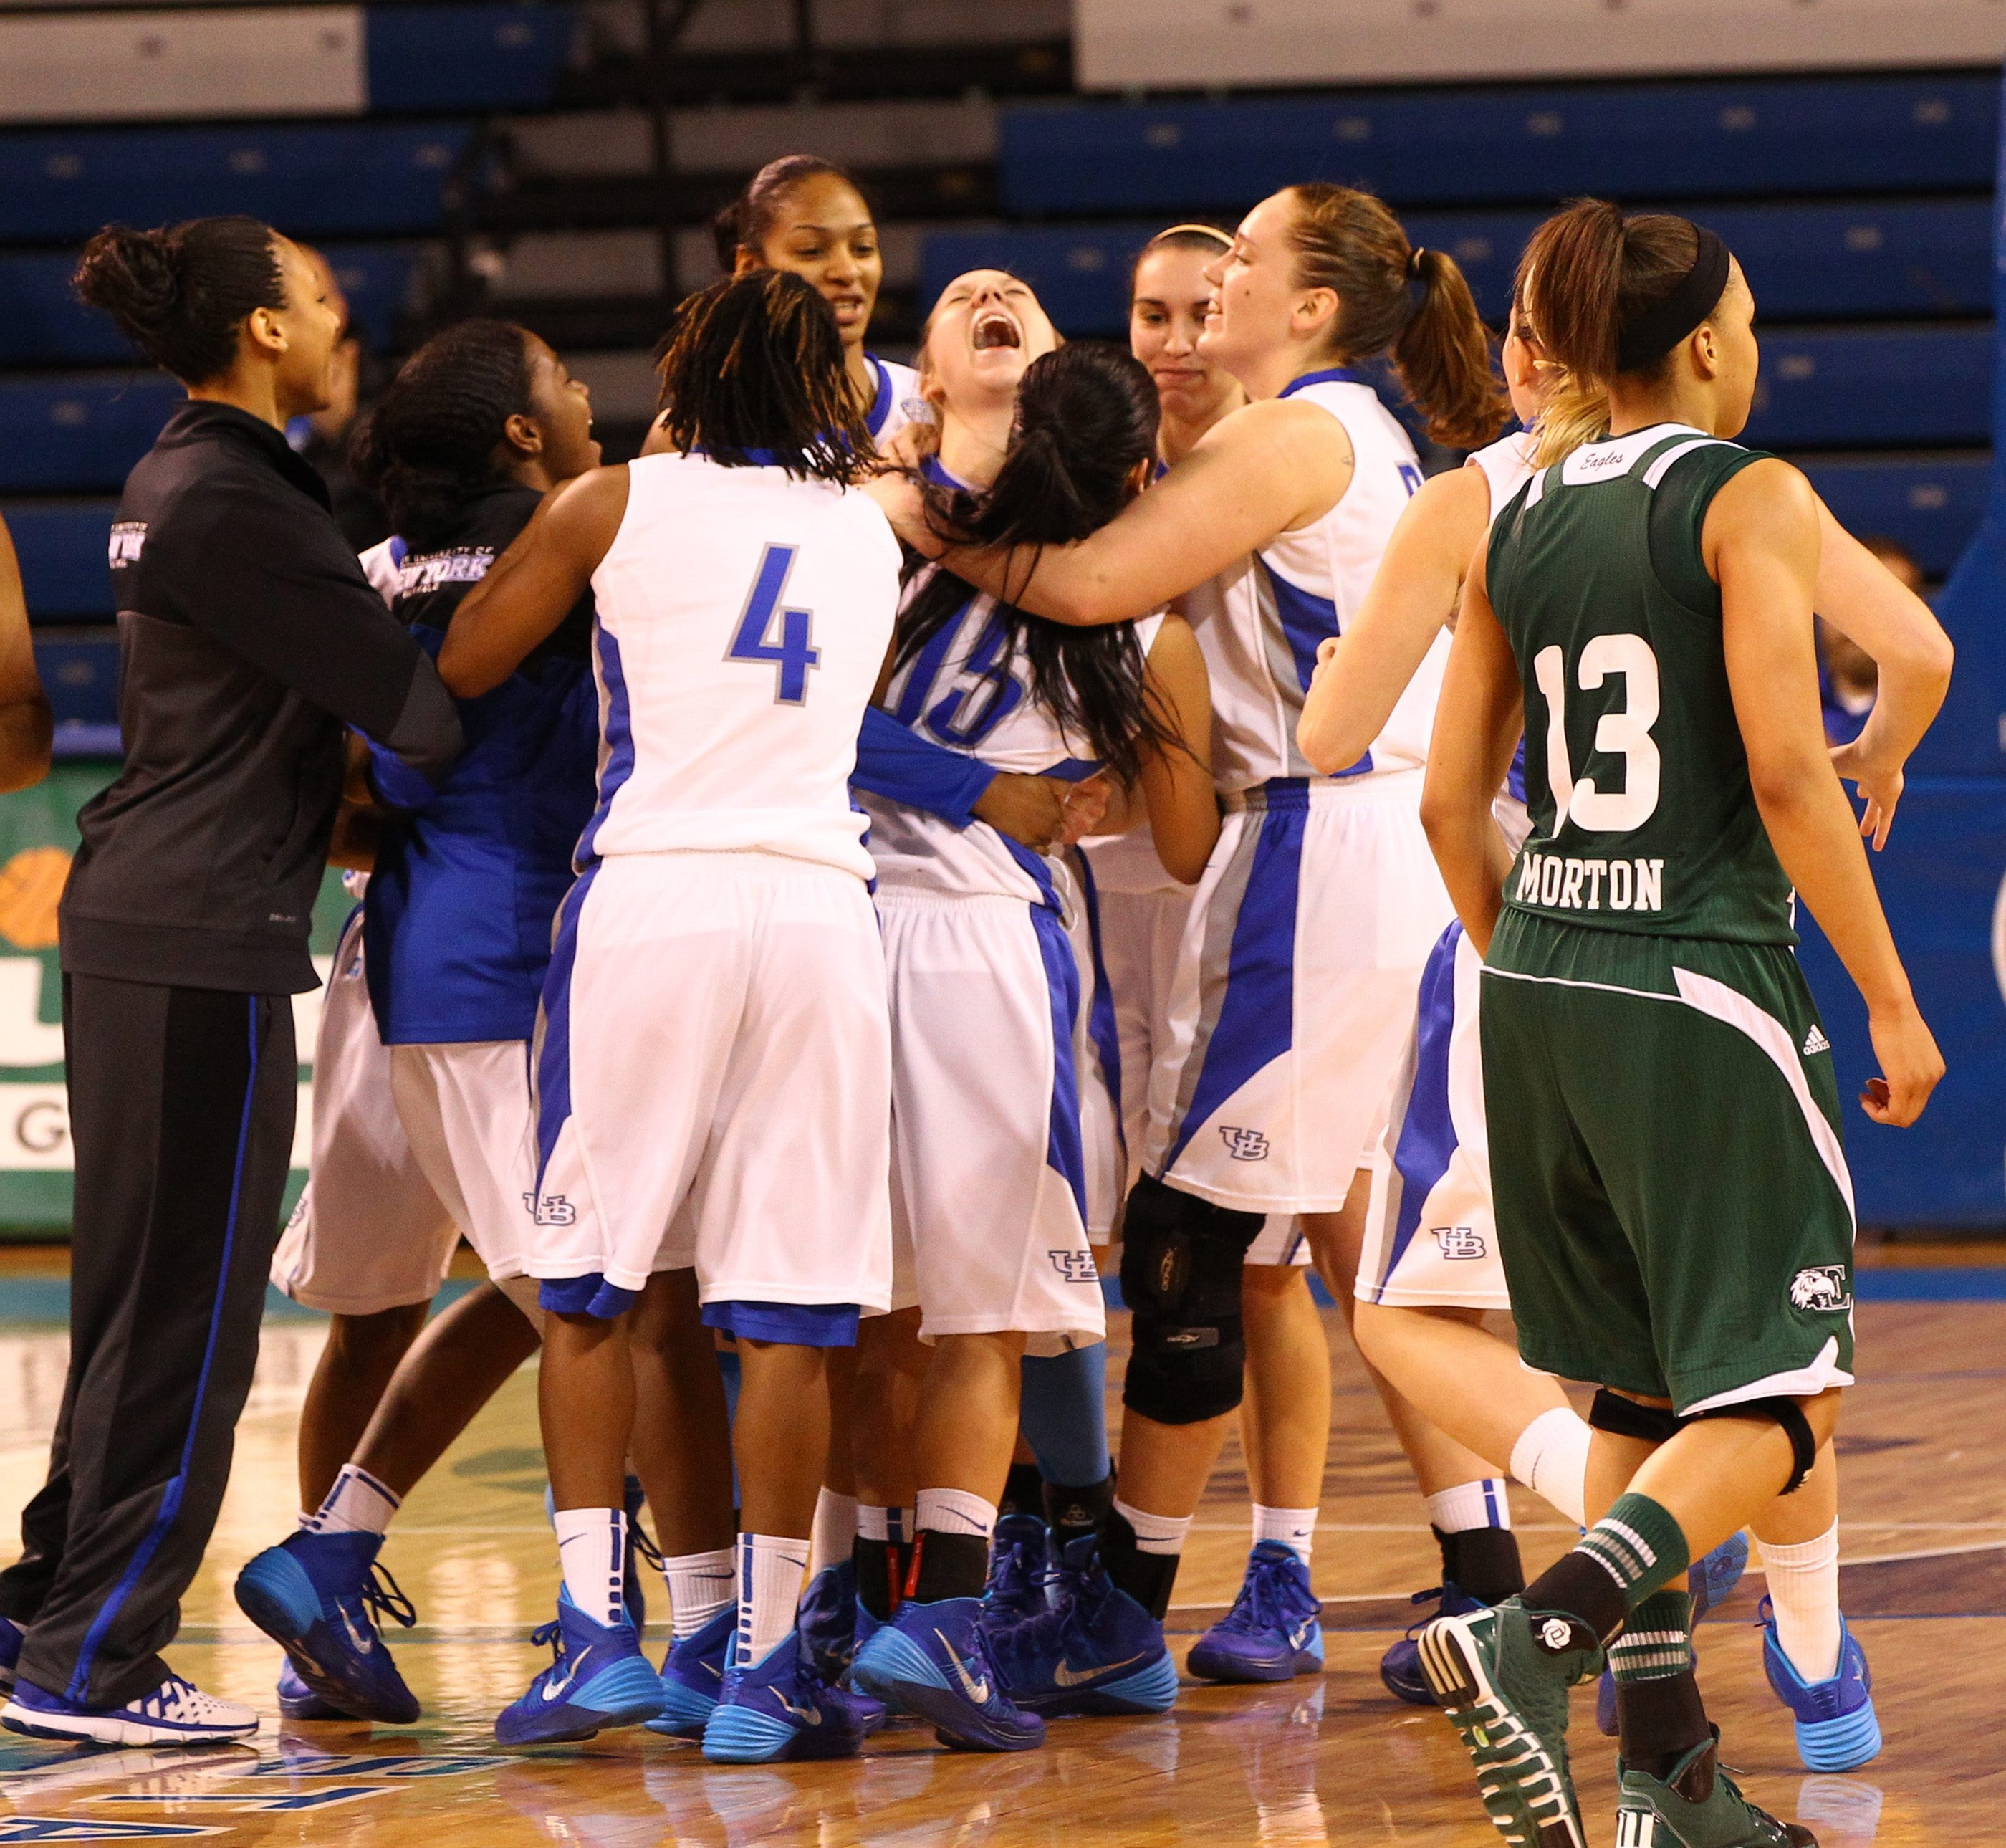 UB's Mackenzie Loesing, center, is mobbed by her teammates after scoring the game winning basket in overtime against Eastern Michigan Saturday at Alumni Arena.